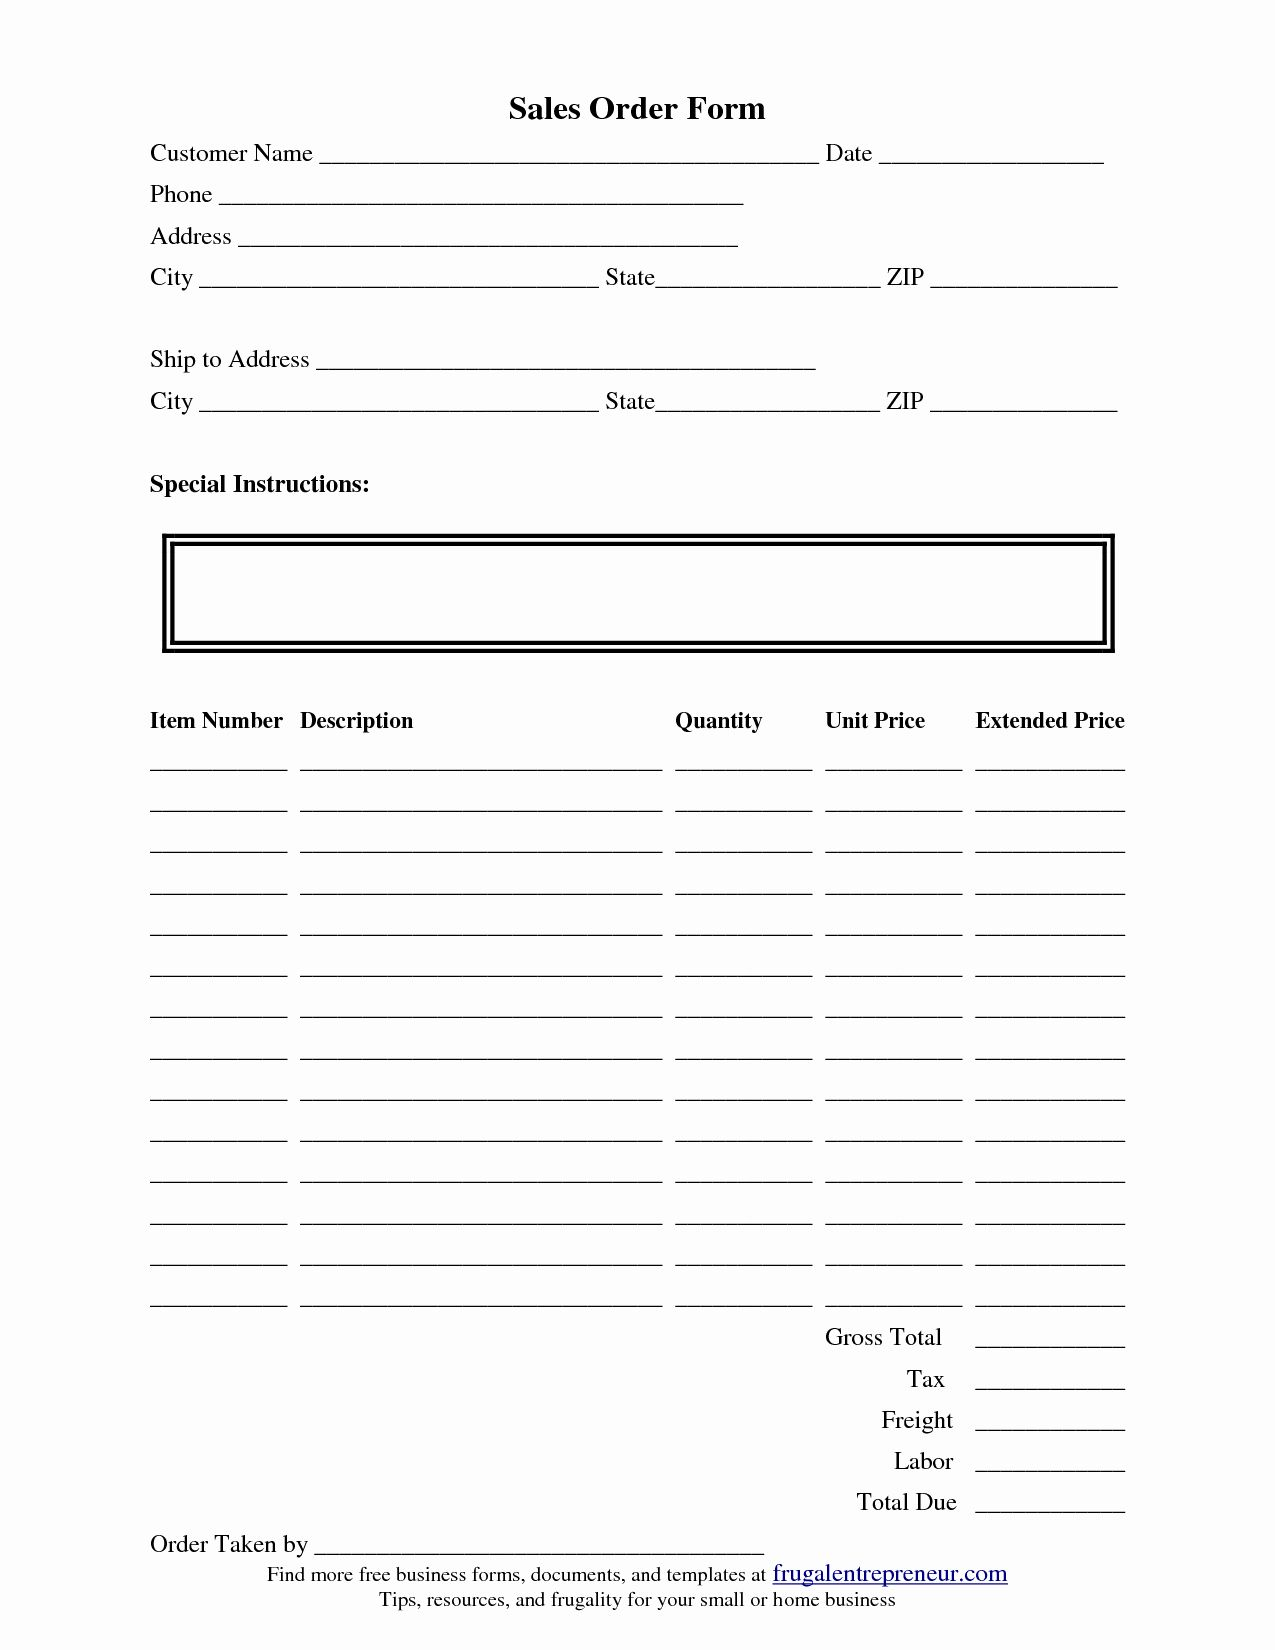 Free Craft Order Form Template Luxury Order Form A4 Pdf File Instant Download By Verogobet Order Form Template Order Form Template Free Purchase Order Template